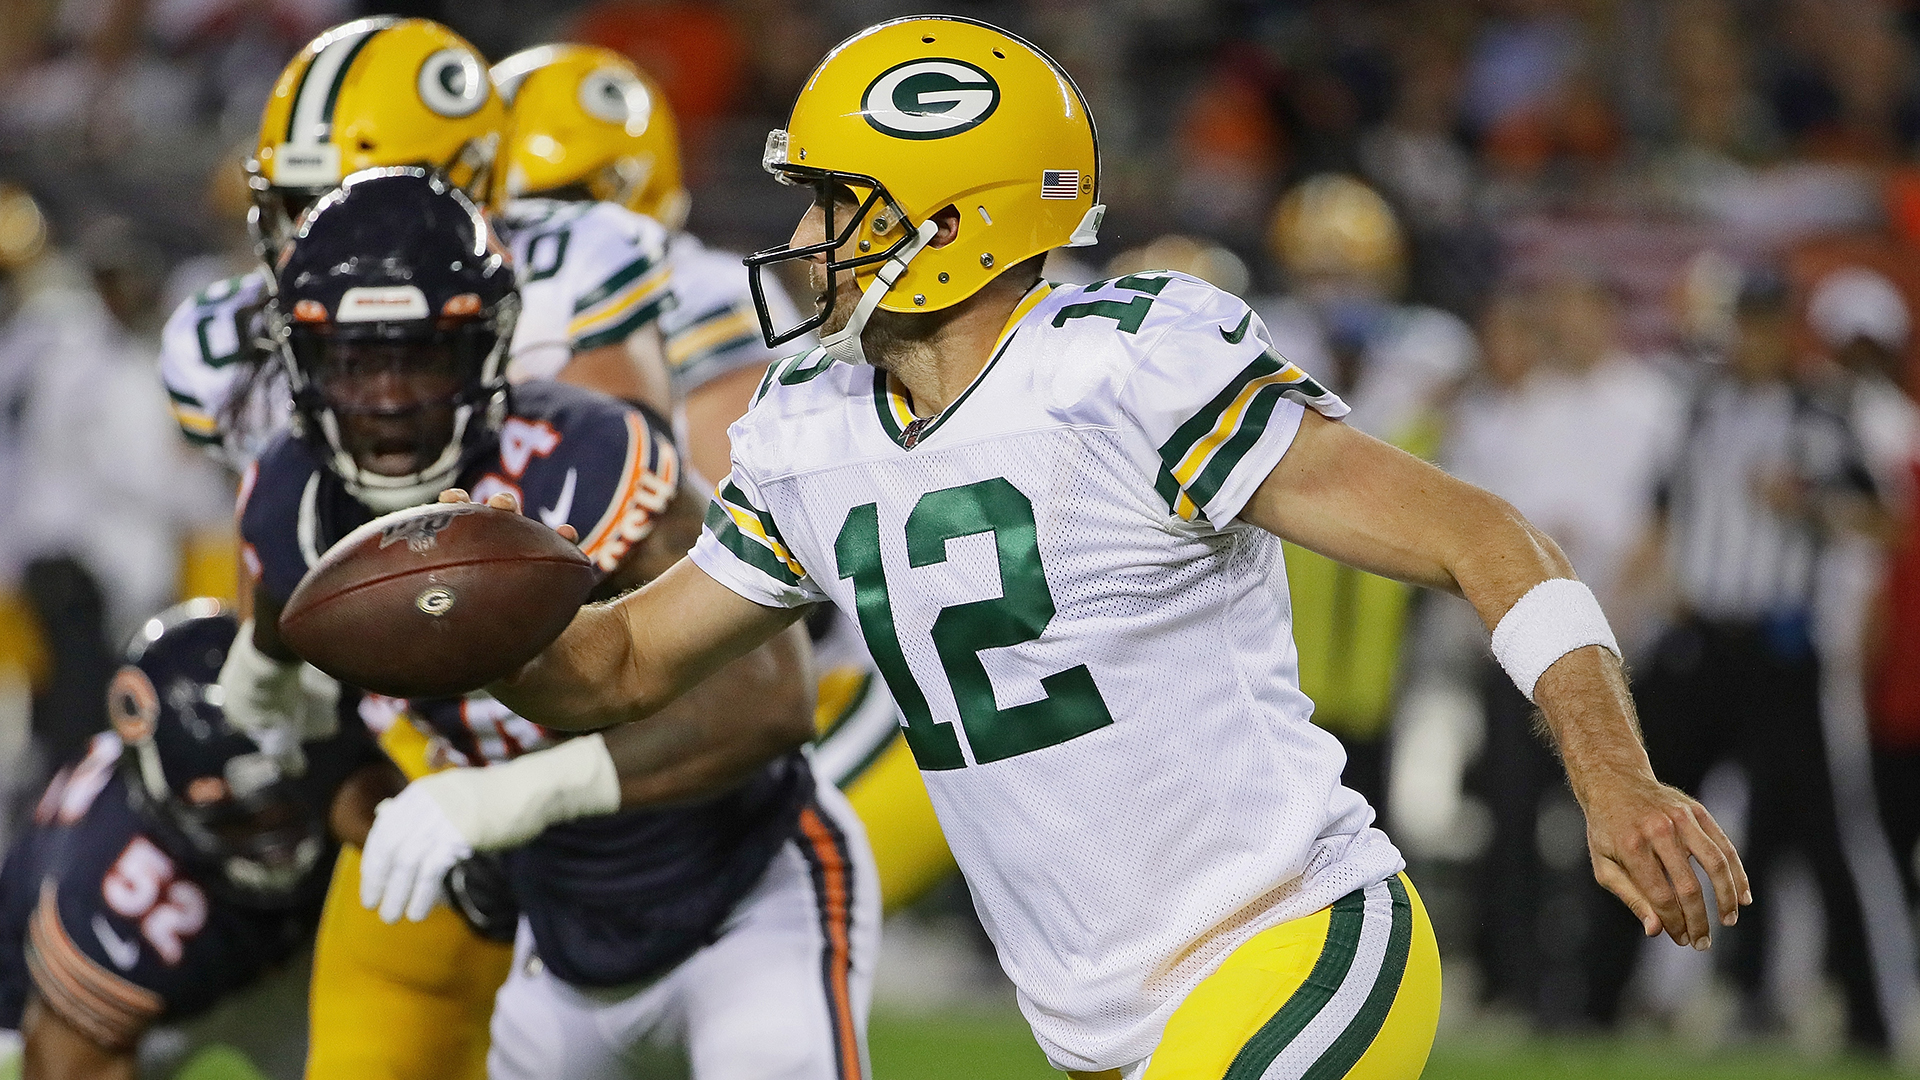 Three takeaways from the Packers' lackluster win over the Bears